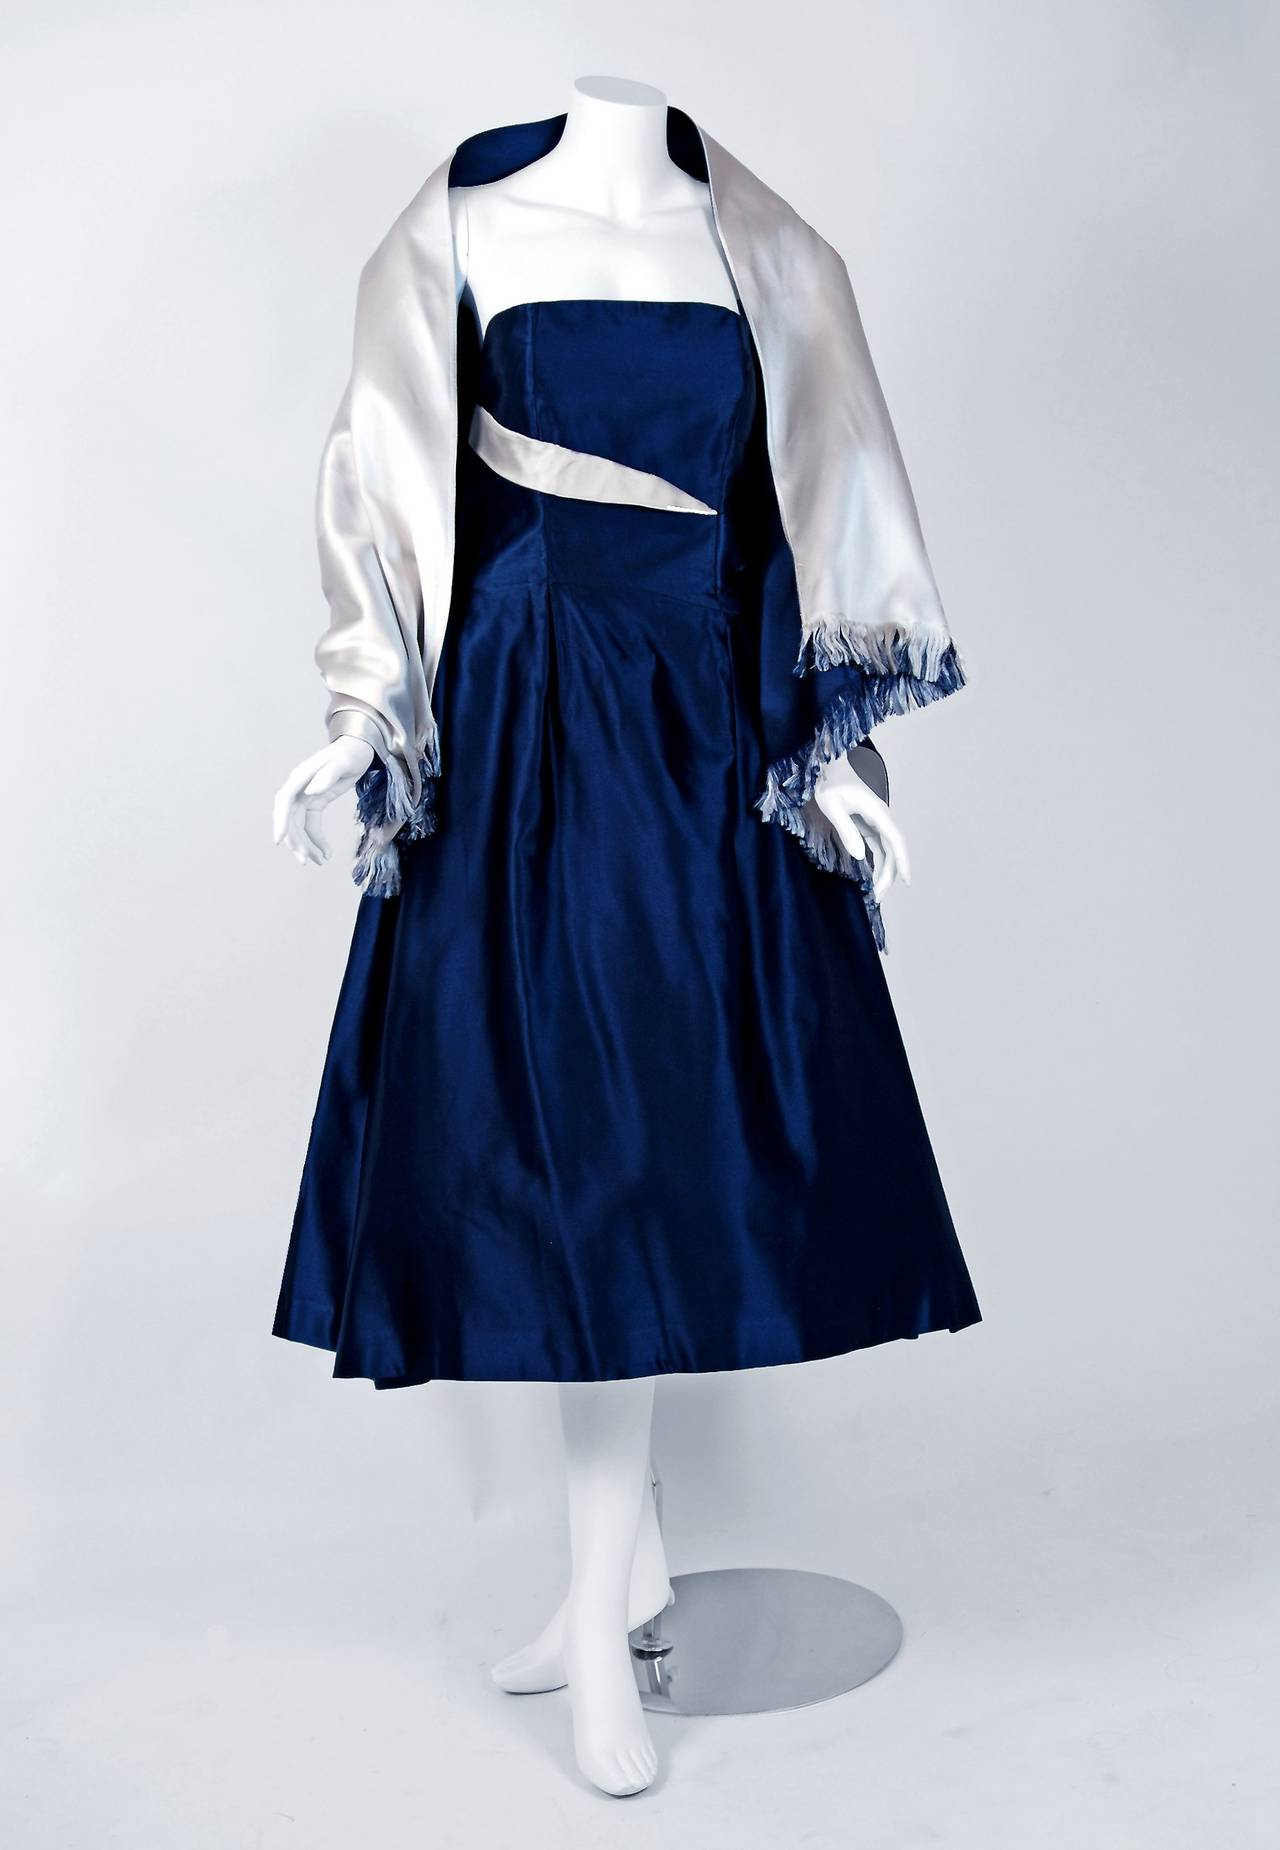 Breathtaking Jeanne Lanvin Castillo navy-blue & ivory satin cocktail dating back to 1955. Castillo was invited by Jeanne Lanvin's daughter to design for her mother's firm in Paris, with hopes of relaunching the firm's name. Jeanne Lanvin, the